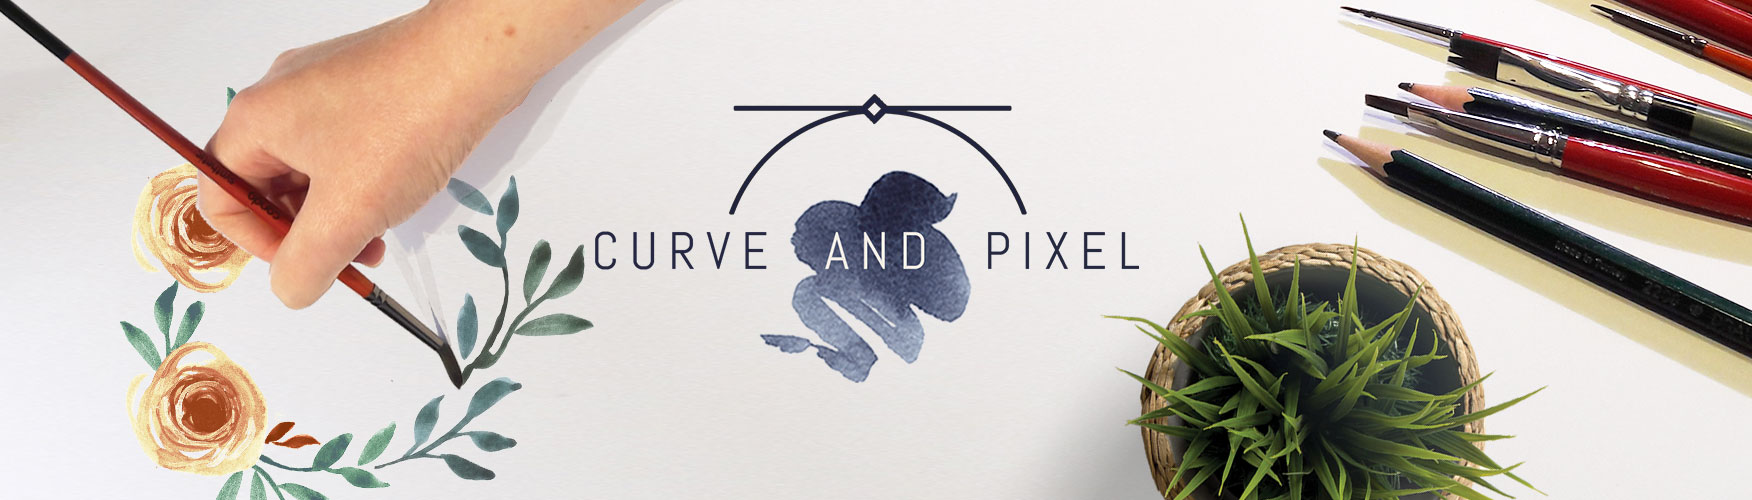 Introducing Curve and Pixel